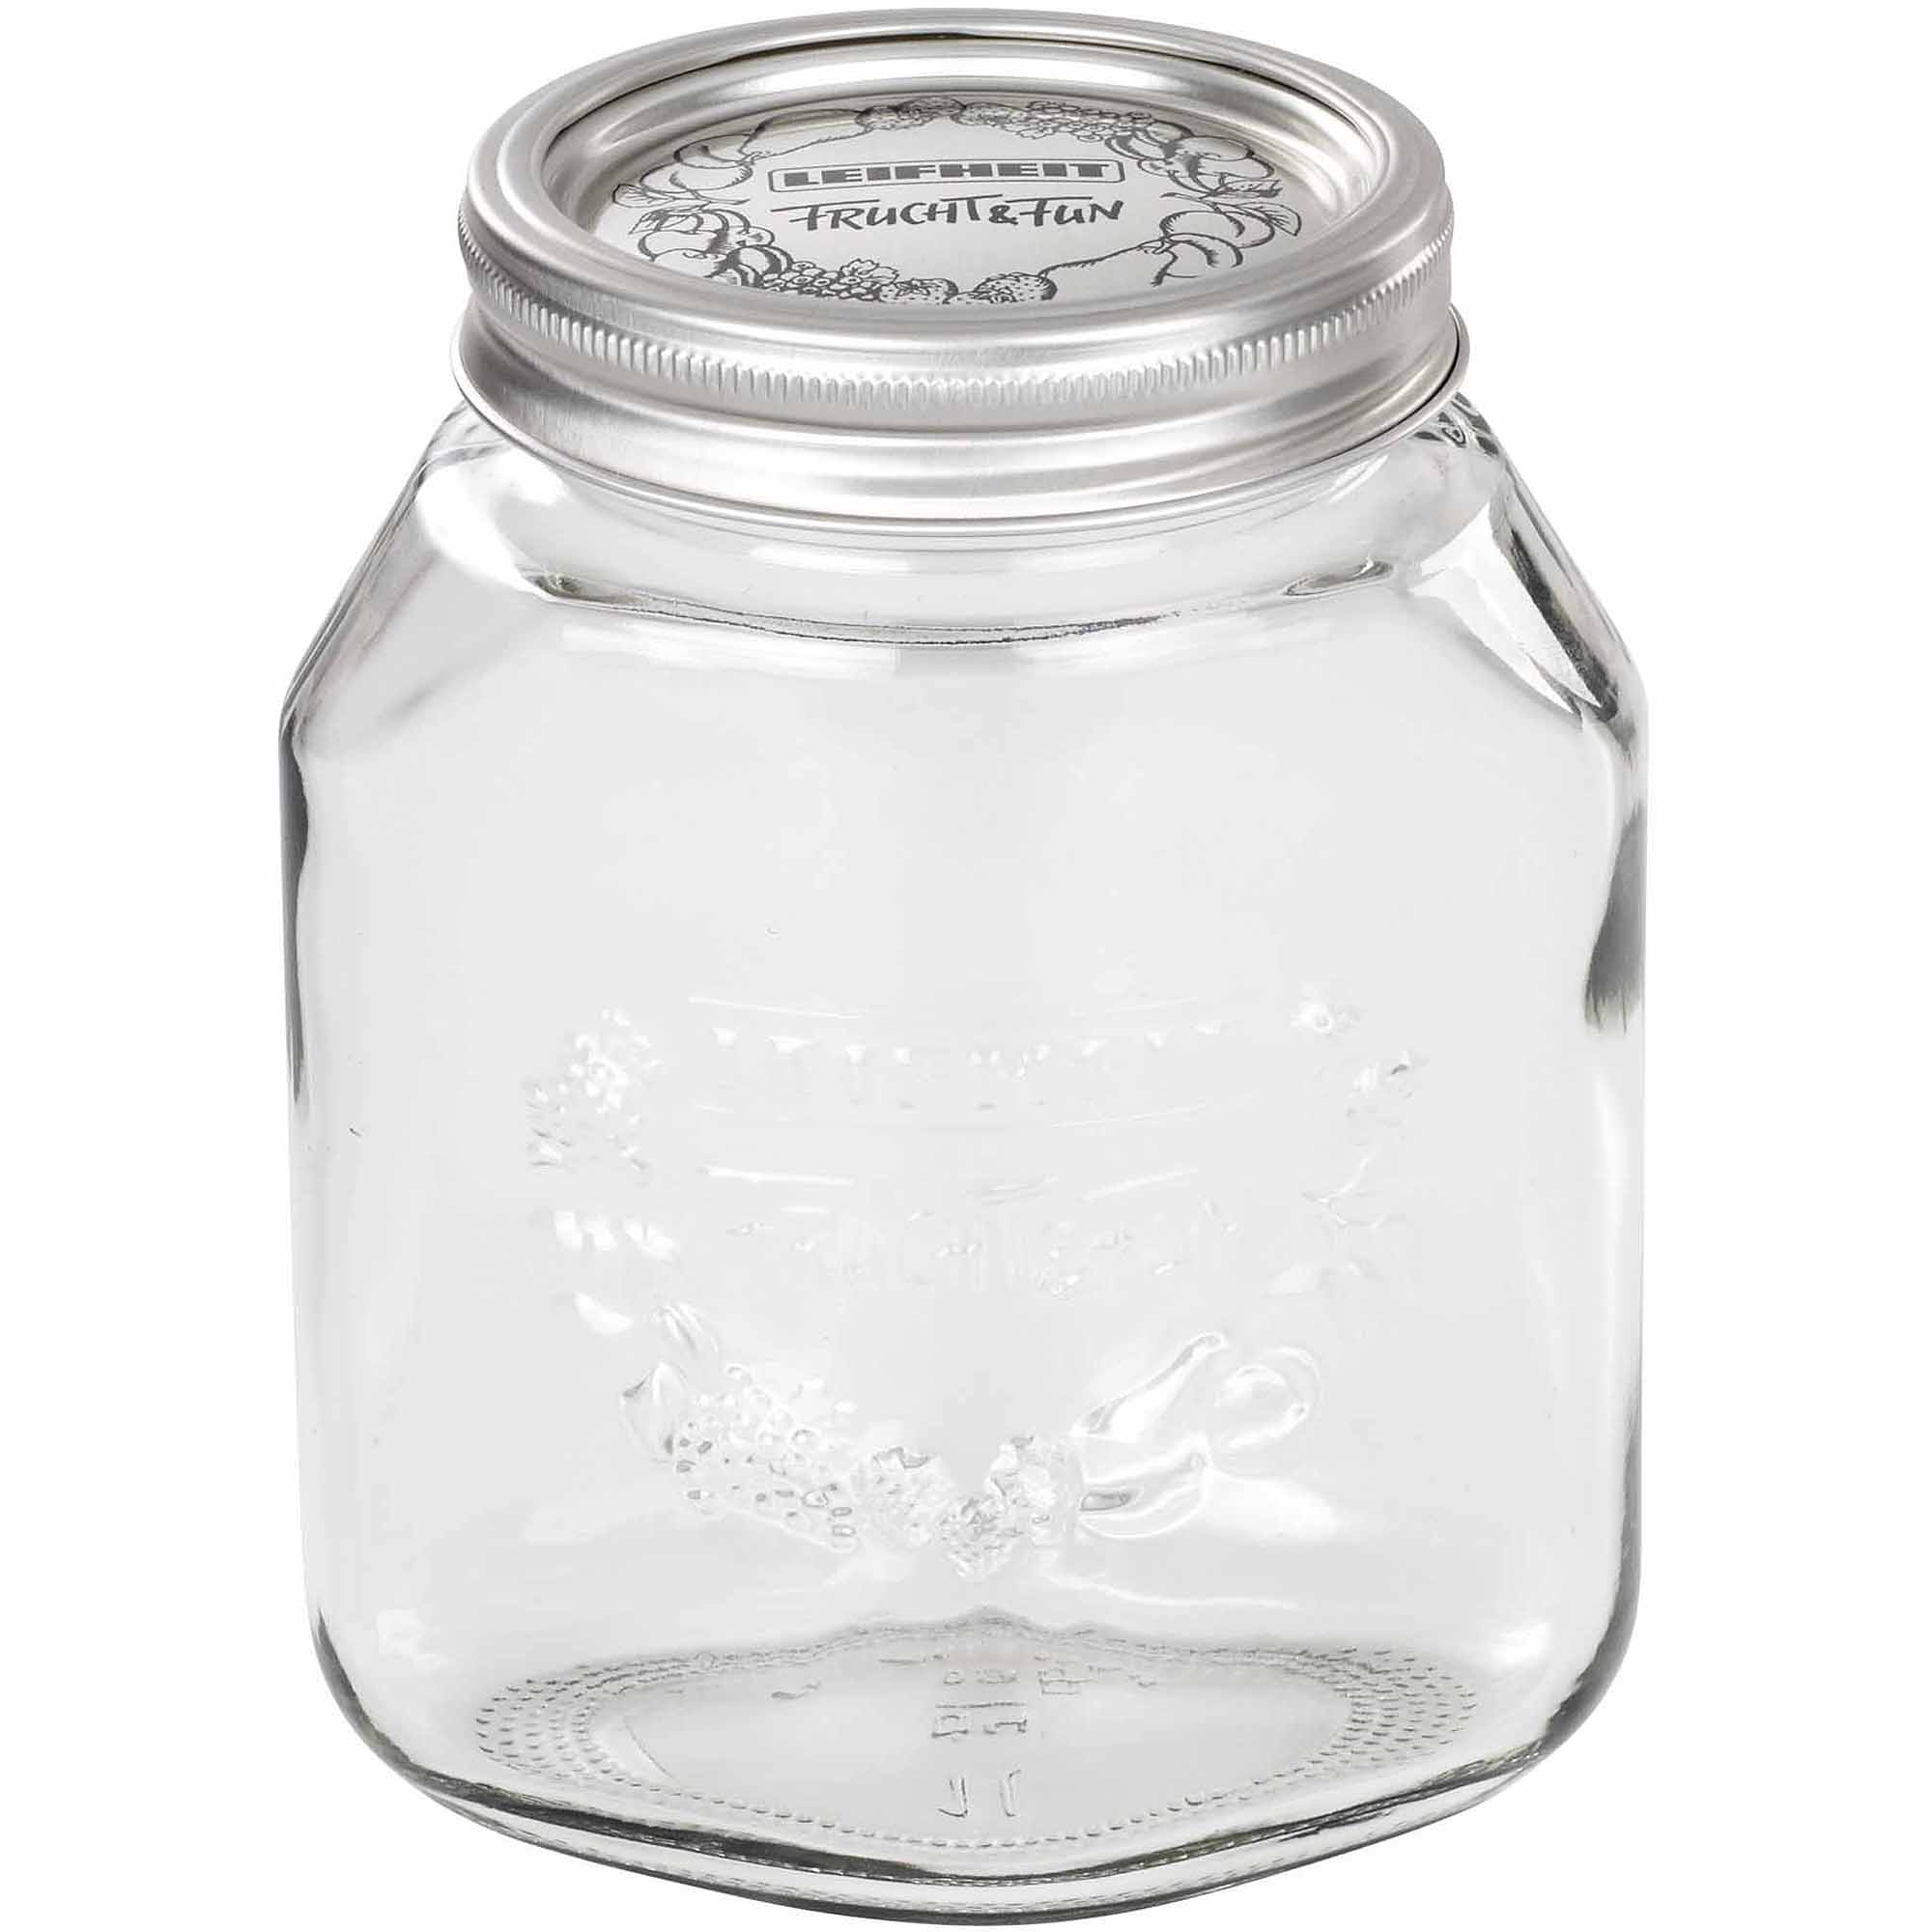 It is an image of Simplicity Mason Jars Images